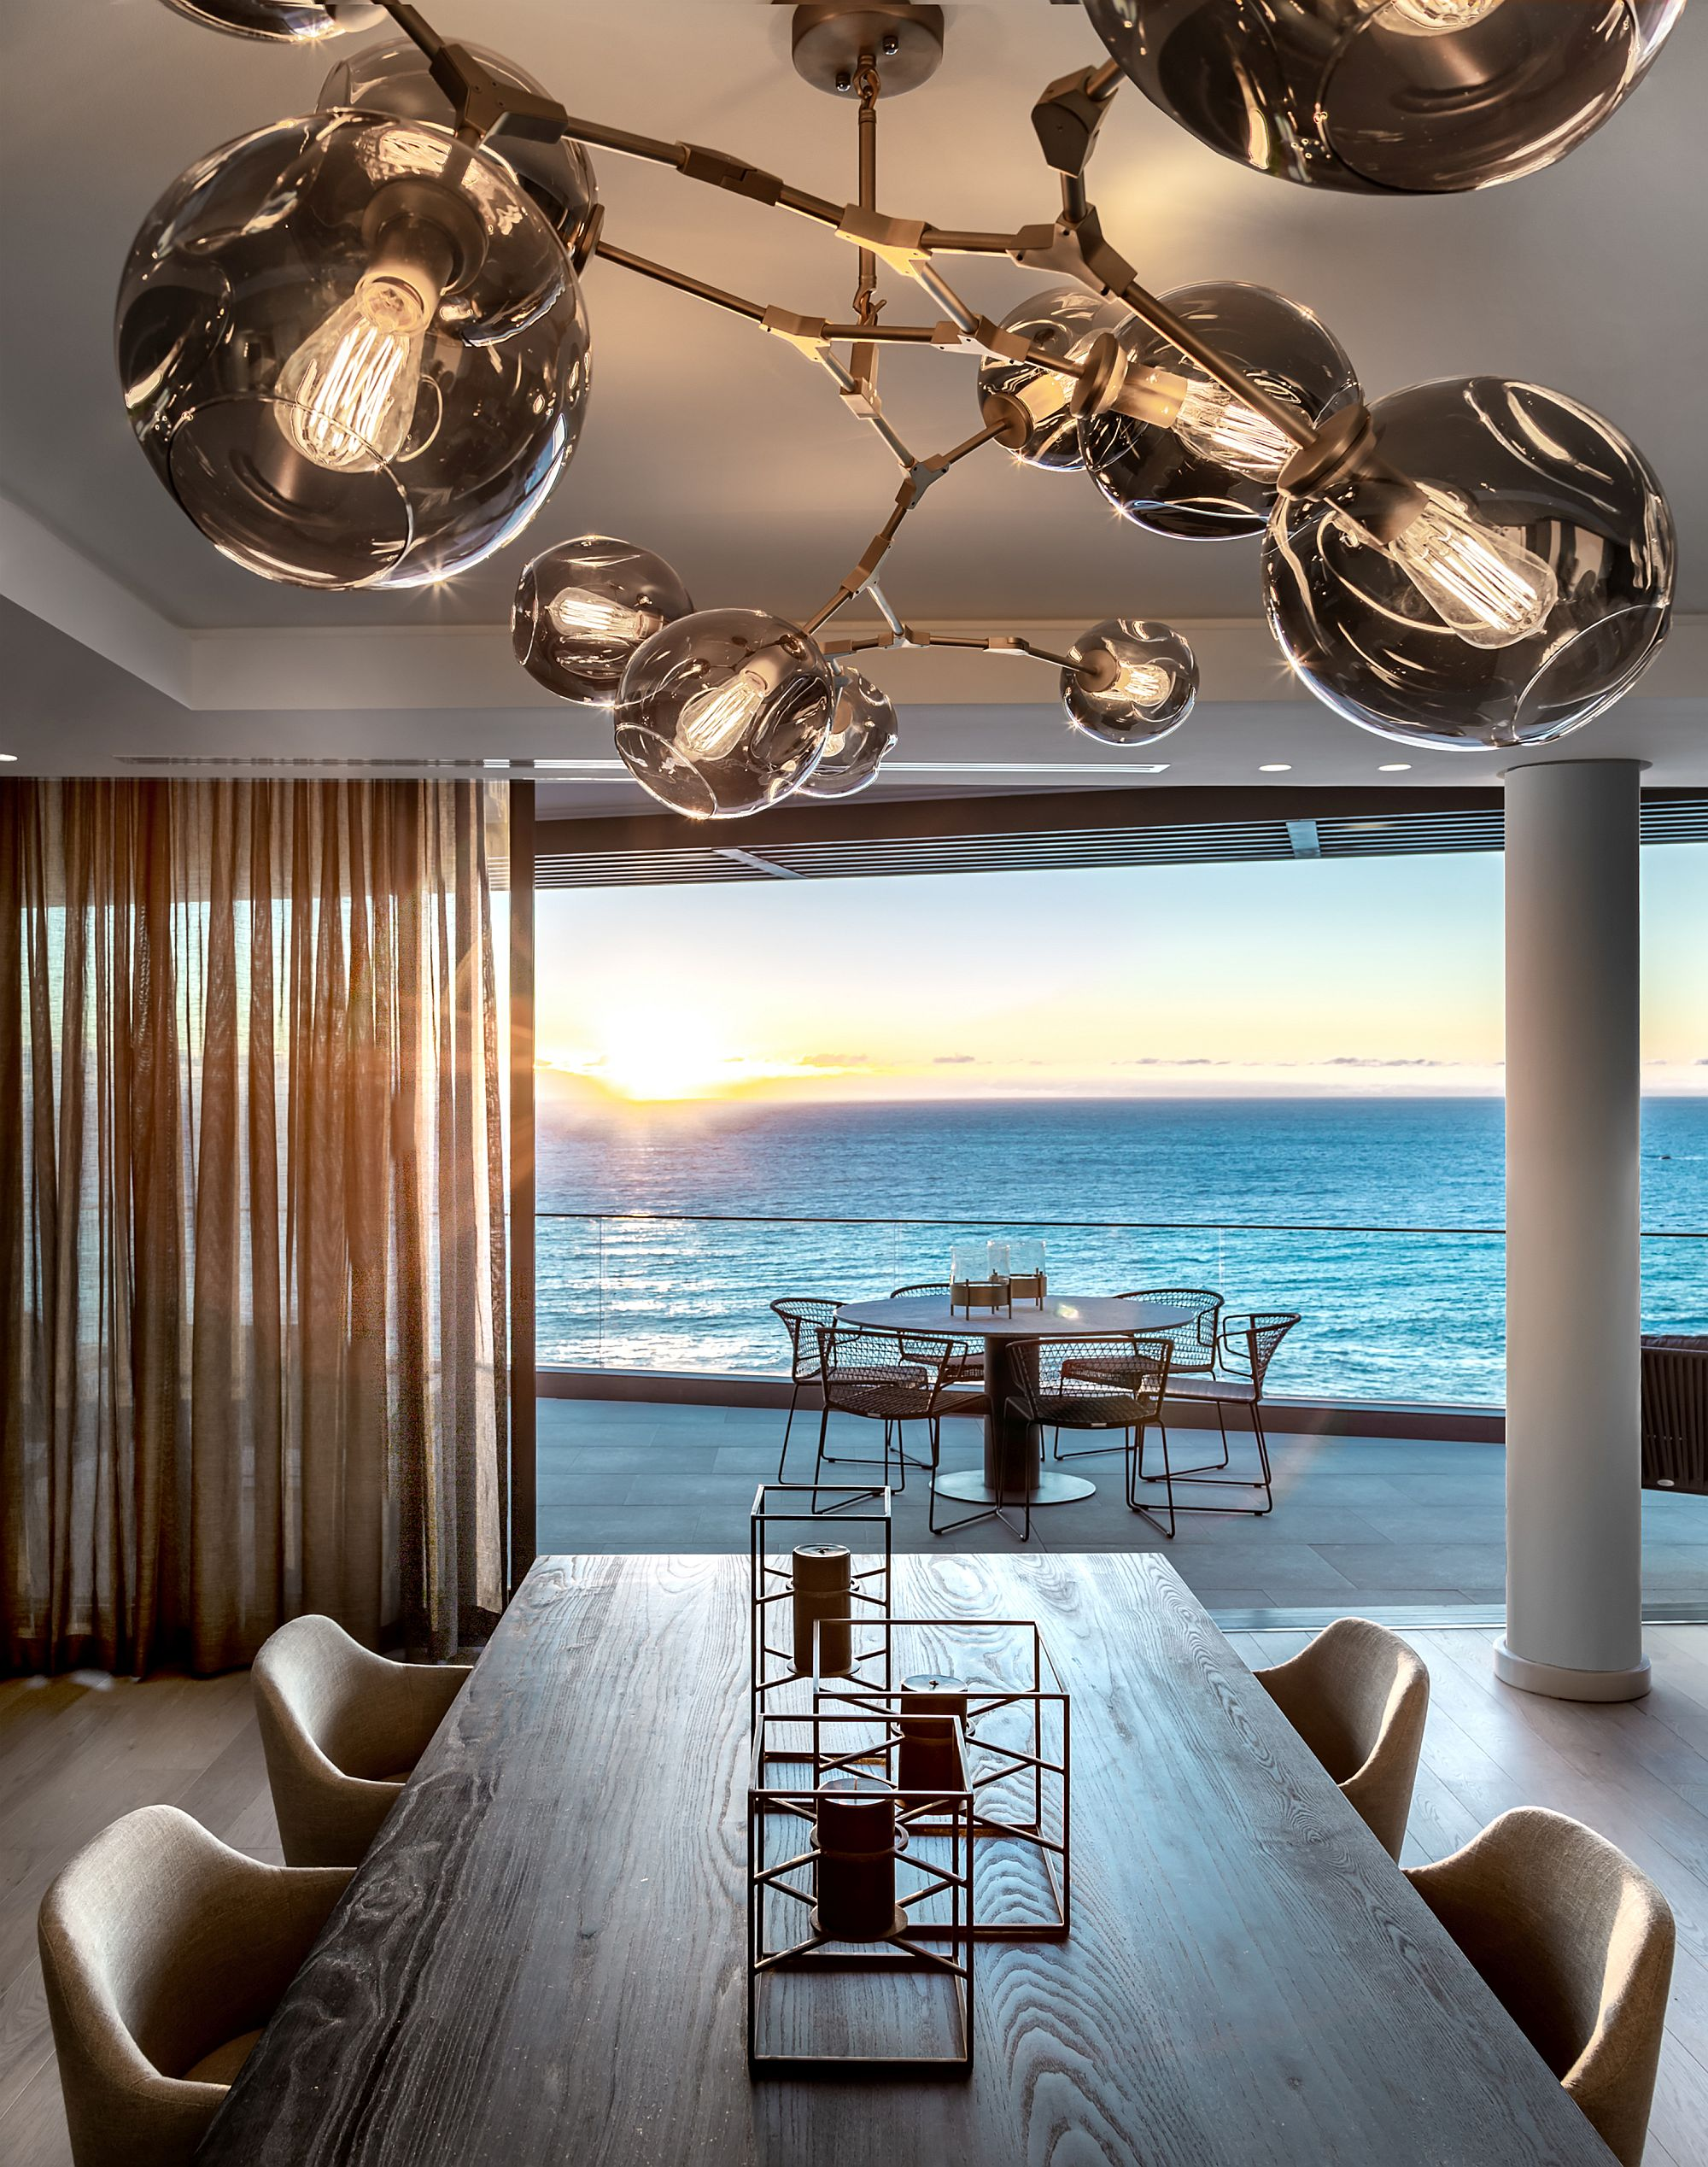 Spectacular-view-of-the-ocean-beyond-from-the-dining-room-and-the-balcony